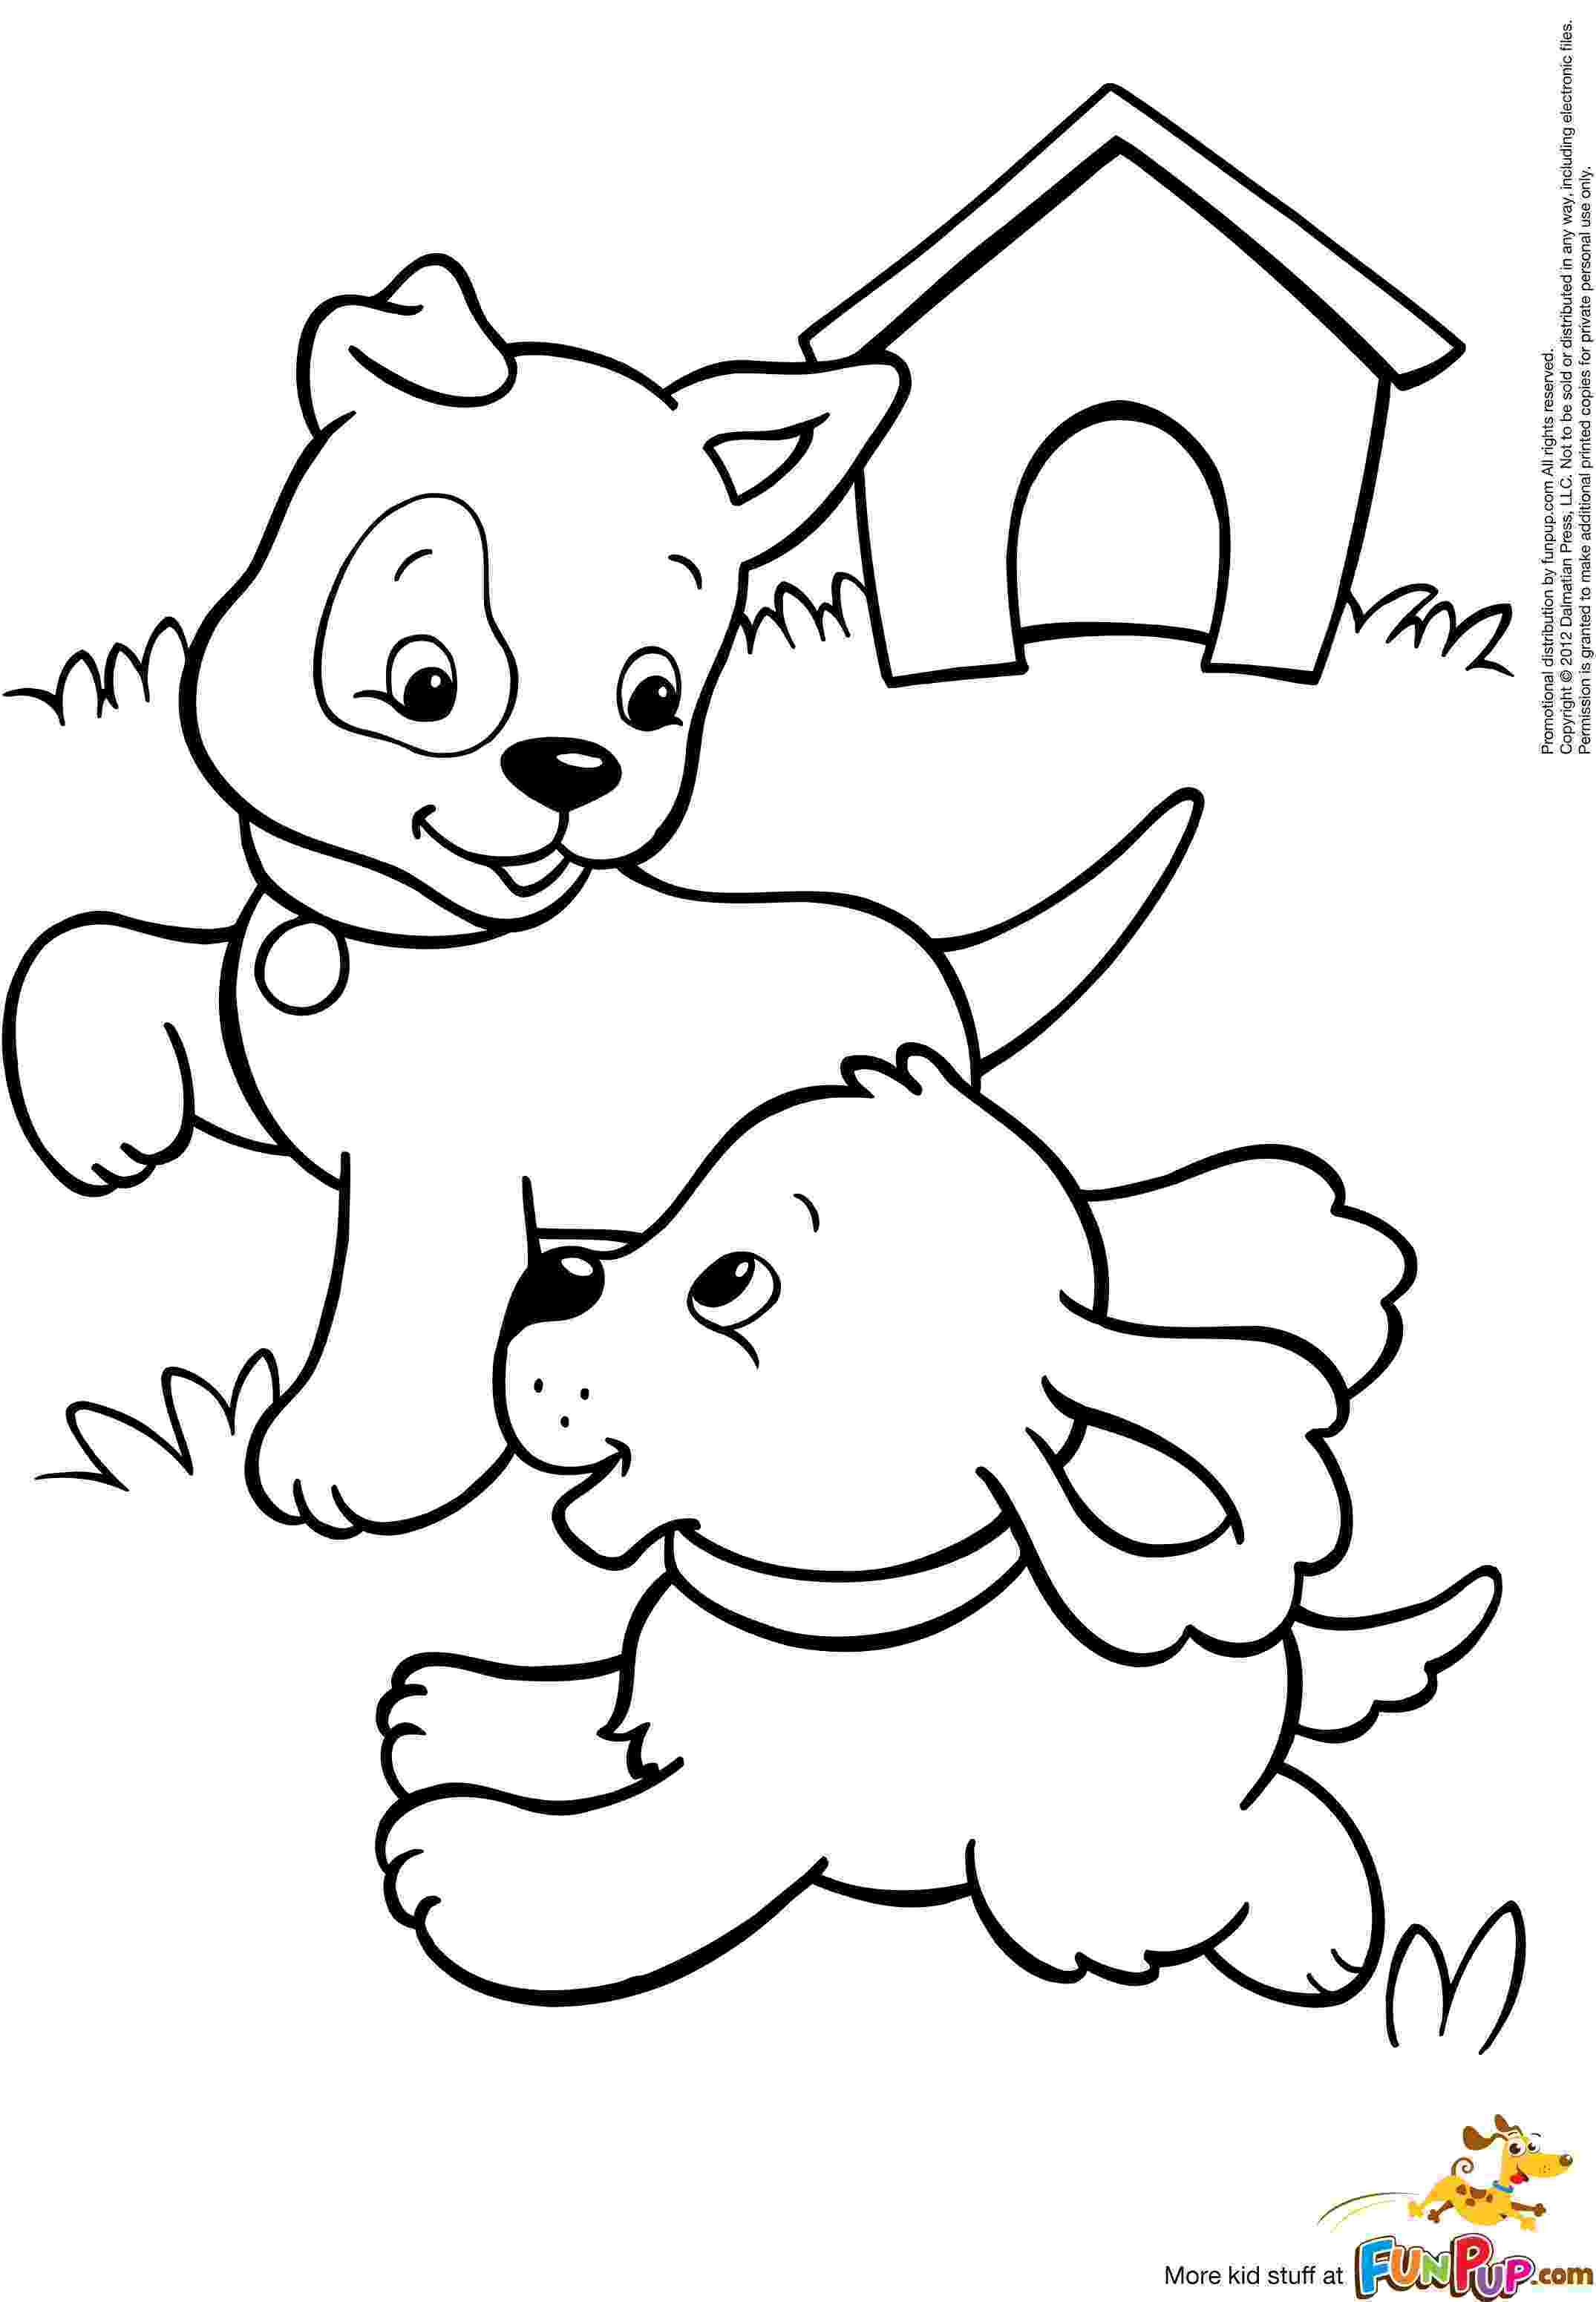 coloring pages of puppies free printable dog coloring pages for kids pages coloring of puppies